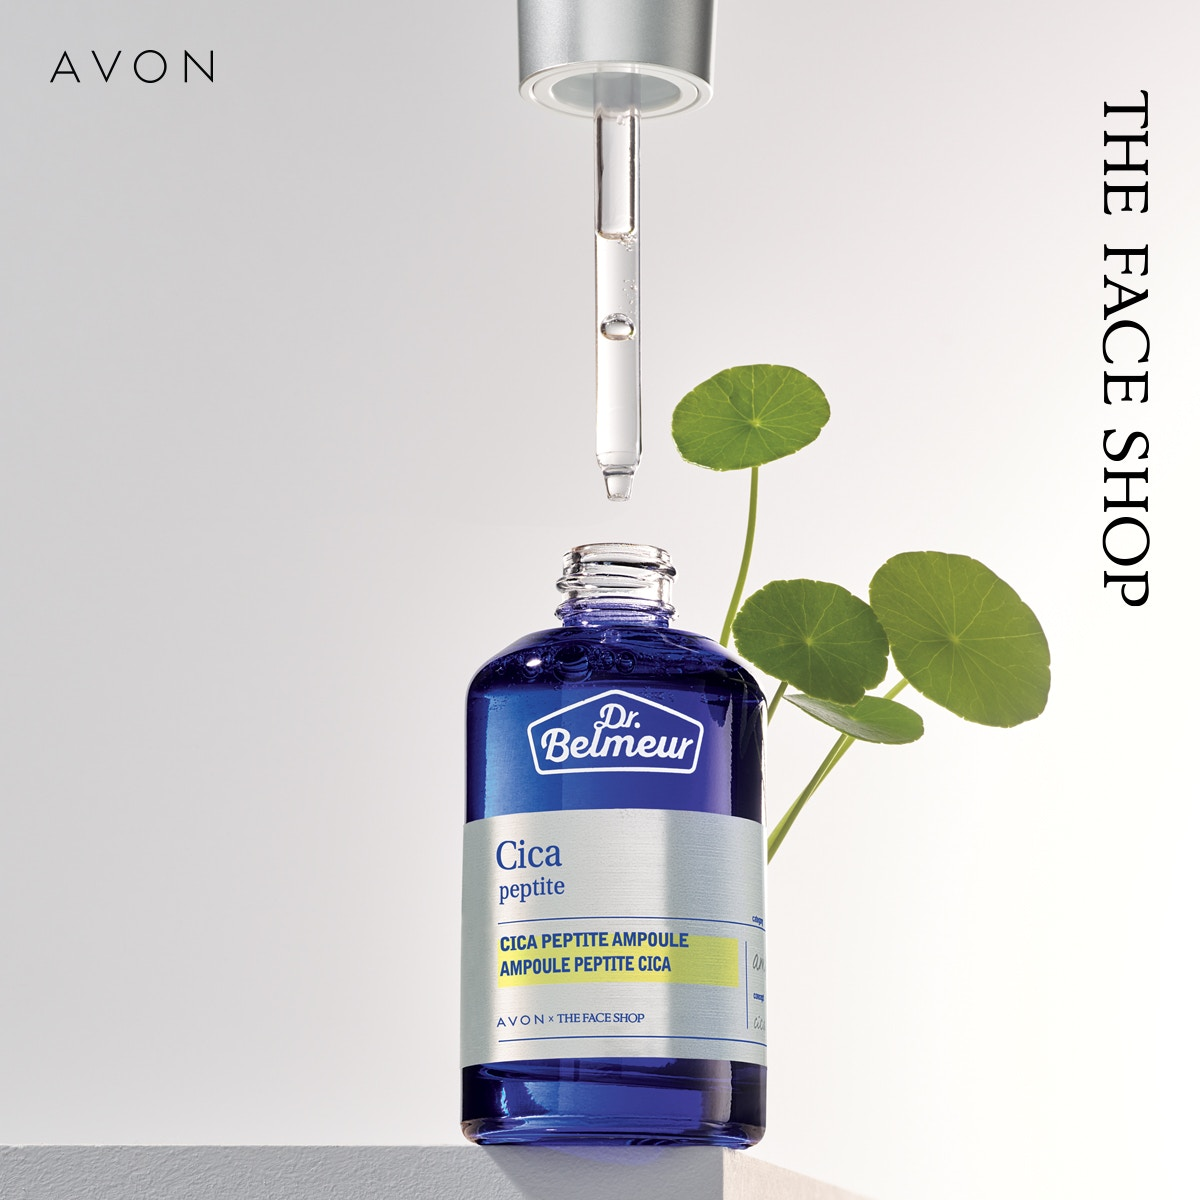 This concentrated blend is made for tired skin as it helps to energize, smooth & firm. http://go.youravon.com/3n4csn #beautyproducts #AntiAging #skincare #skincareproductspic.twitter.com/to29MHarFV